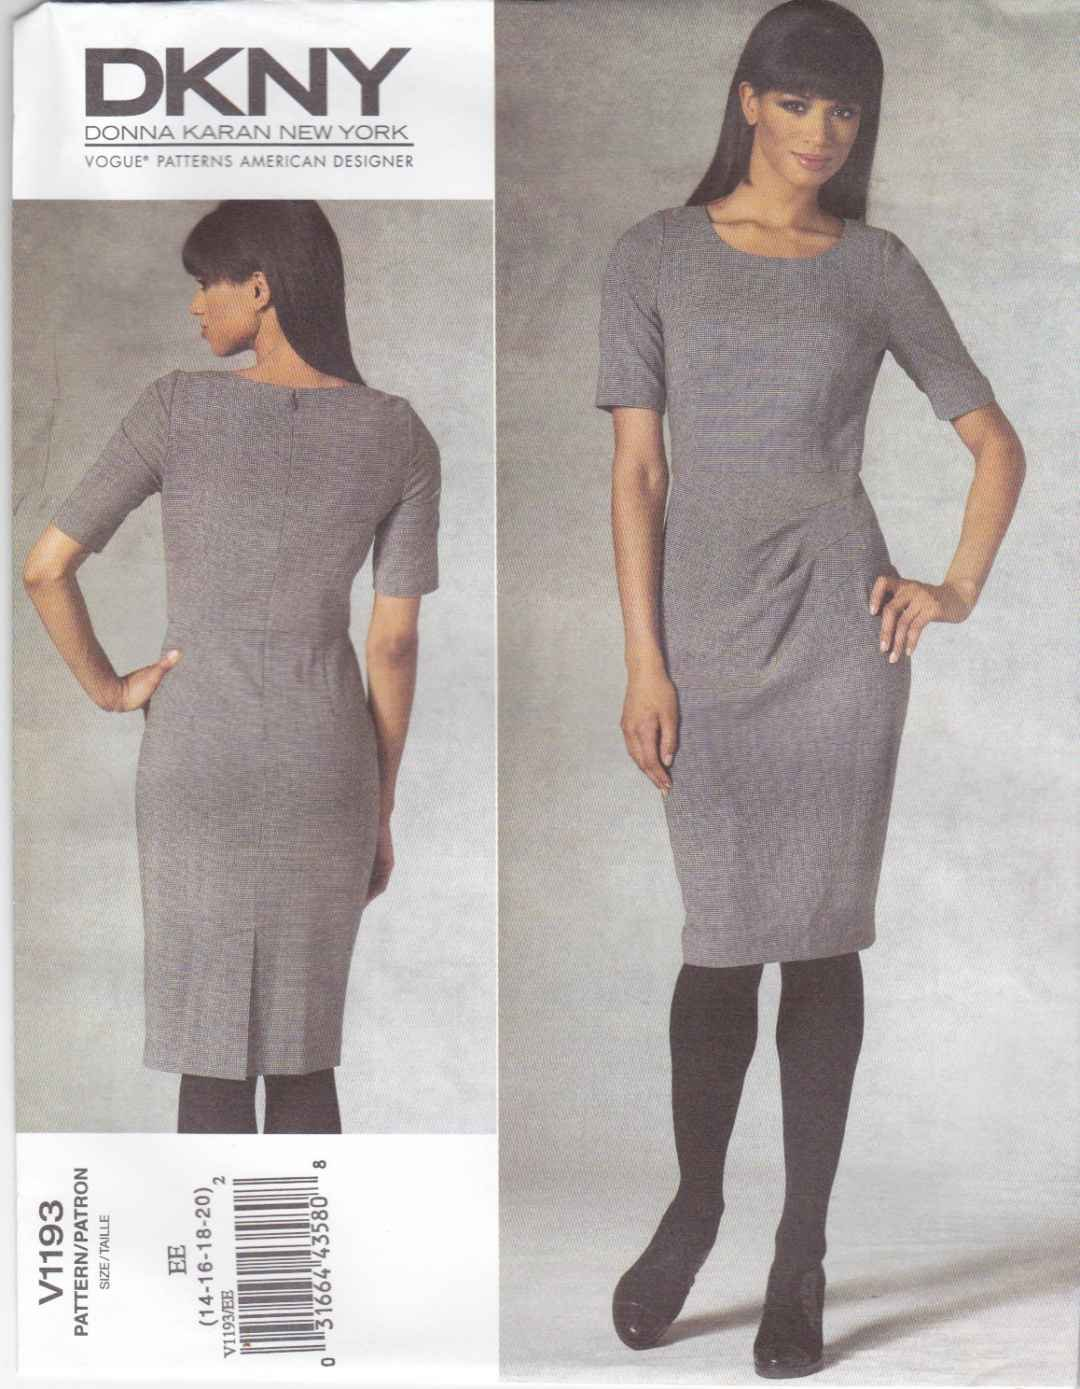 Vogue Sewing Pattern 1193 V1193 Misses Size 14-20 DKNY Easy Close-Fitting Short Sleeve Dress